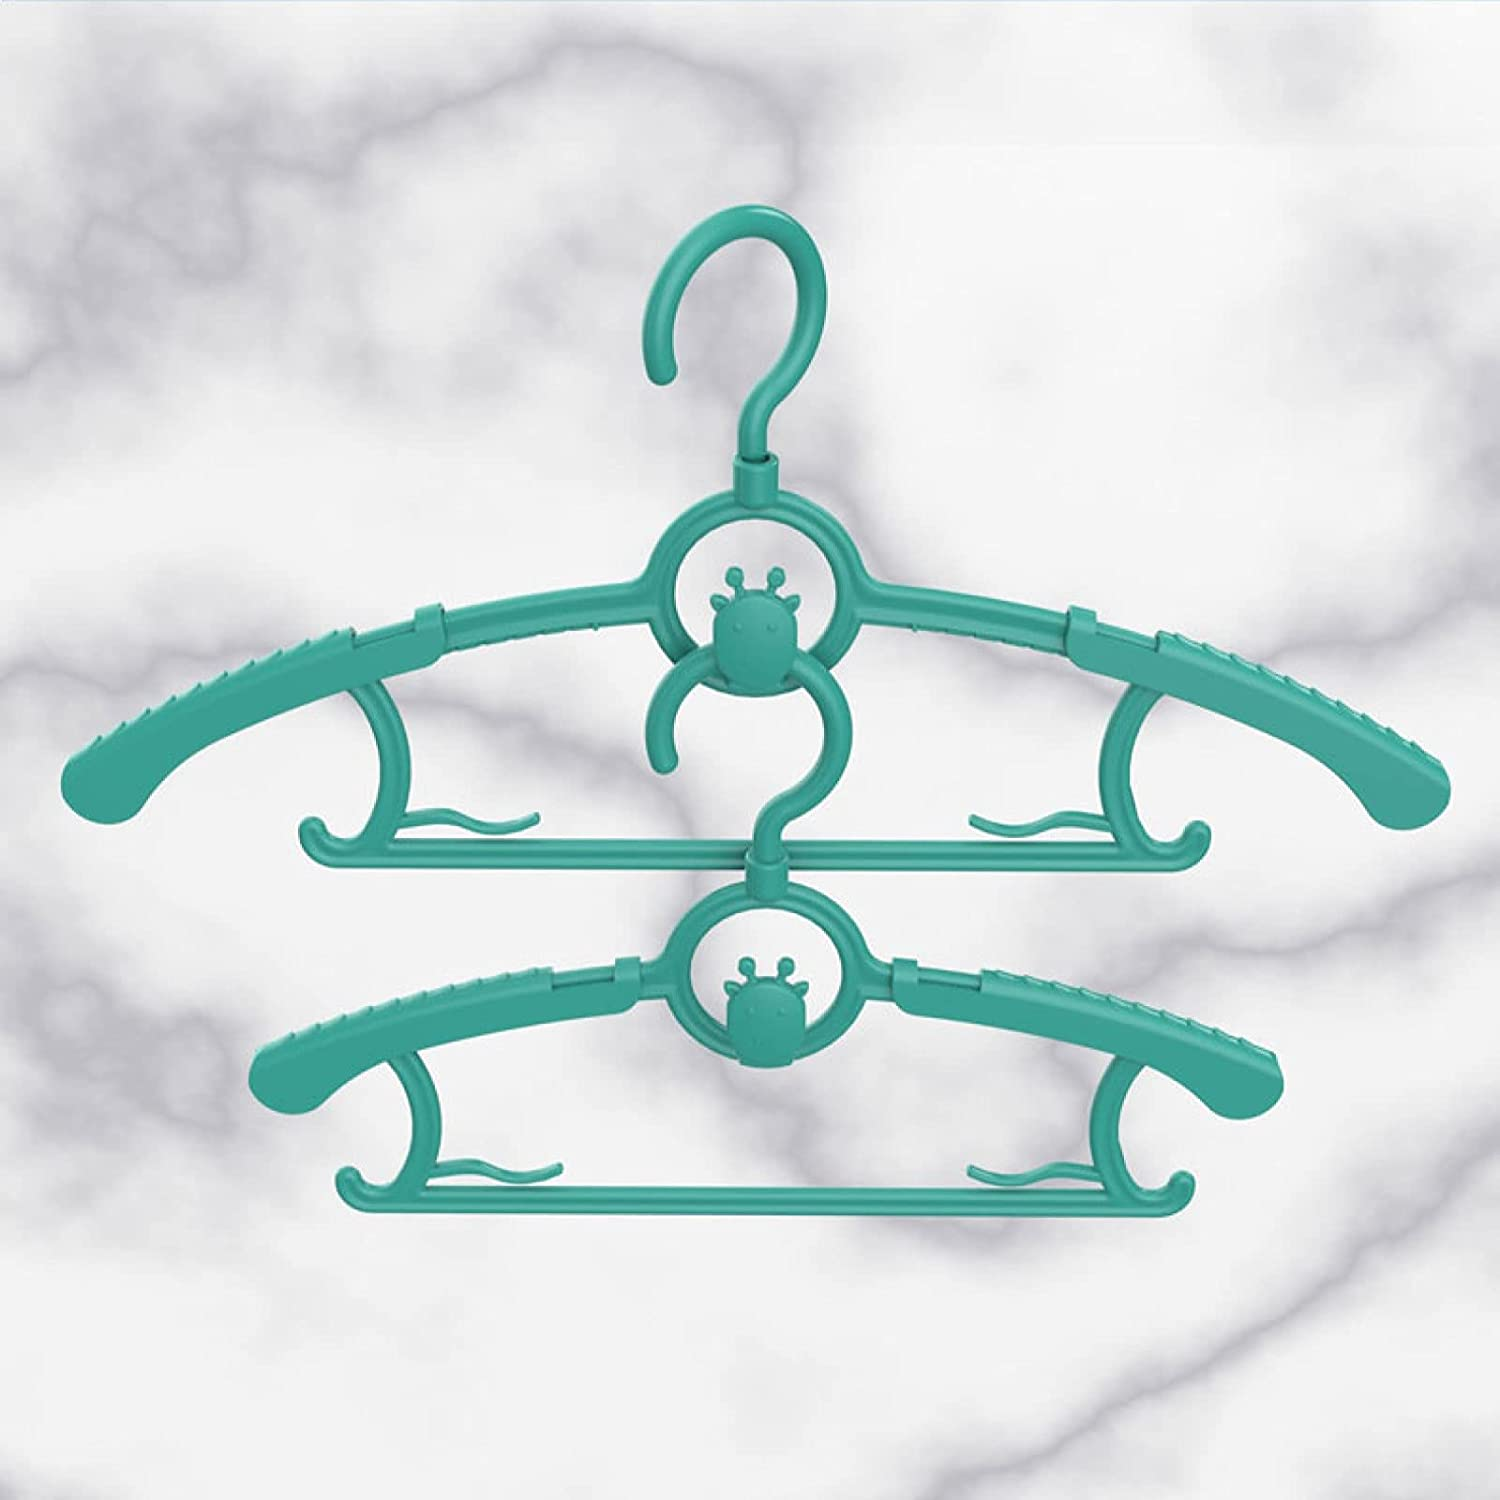 Adjustable Baby Hangers, Plastic Non-Slip Stackable Baby Hanger, Durable & Great as Newborn Kid Child Children Toddler or Infant Clothes Racks for Nursery Closet Wardrobe Pack of 10 (Green)